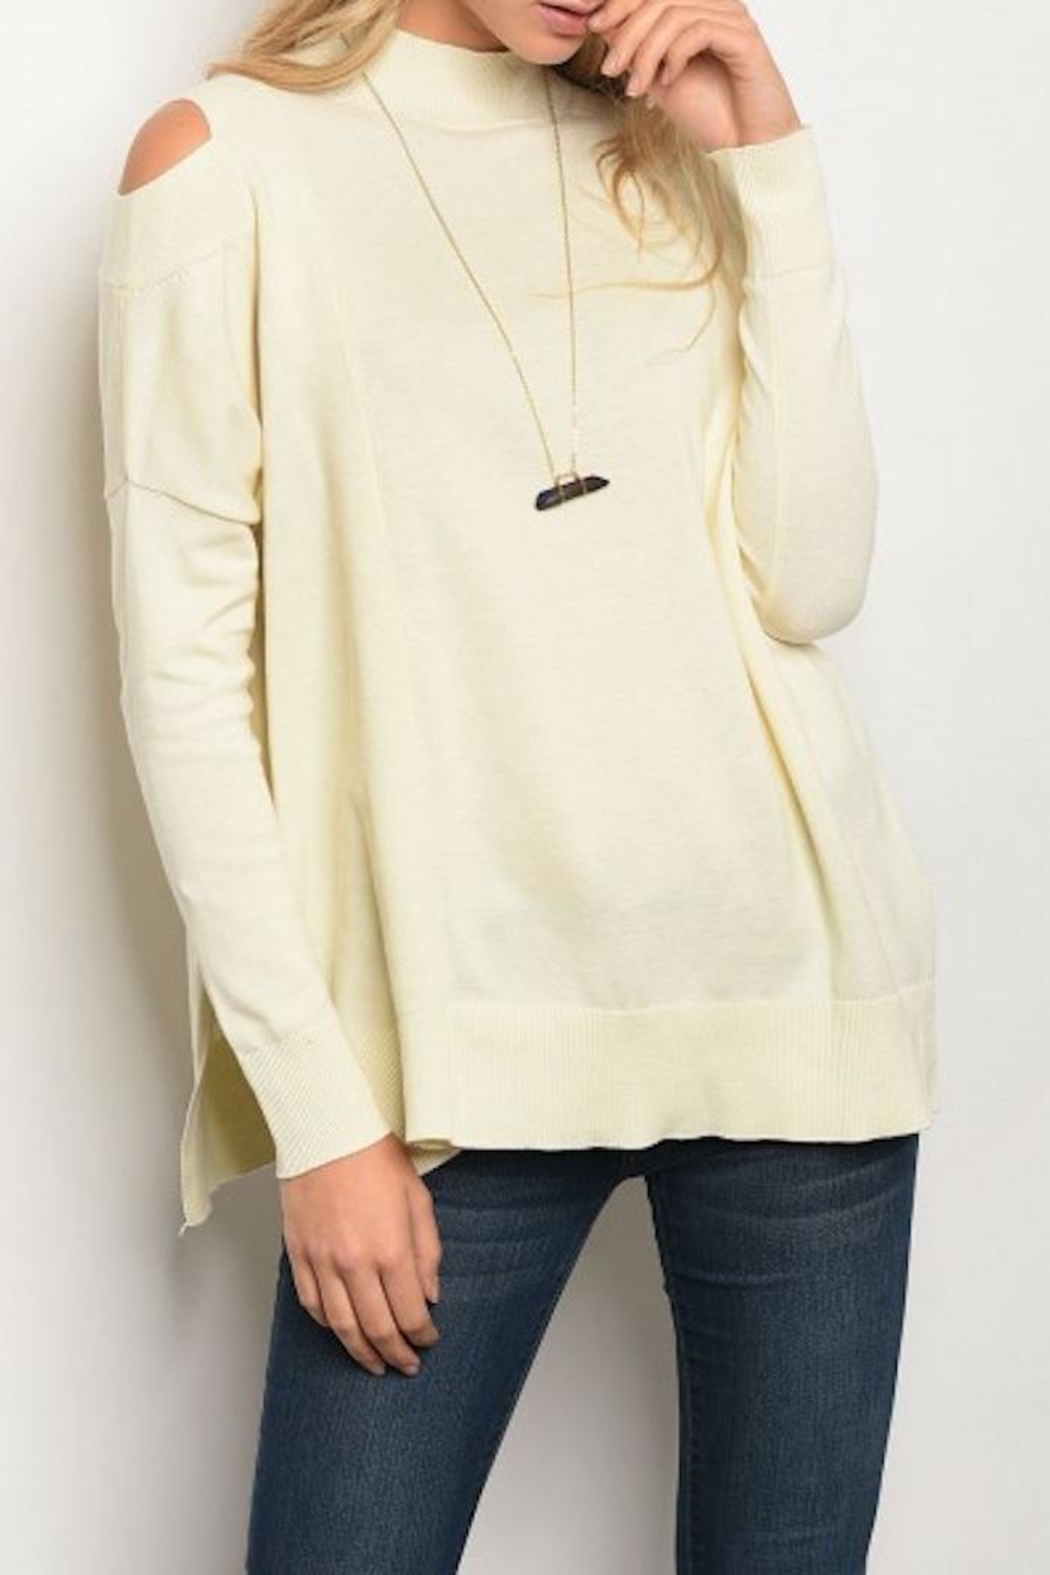 Very J Cutout Shoulder Sweater - Main Image